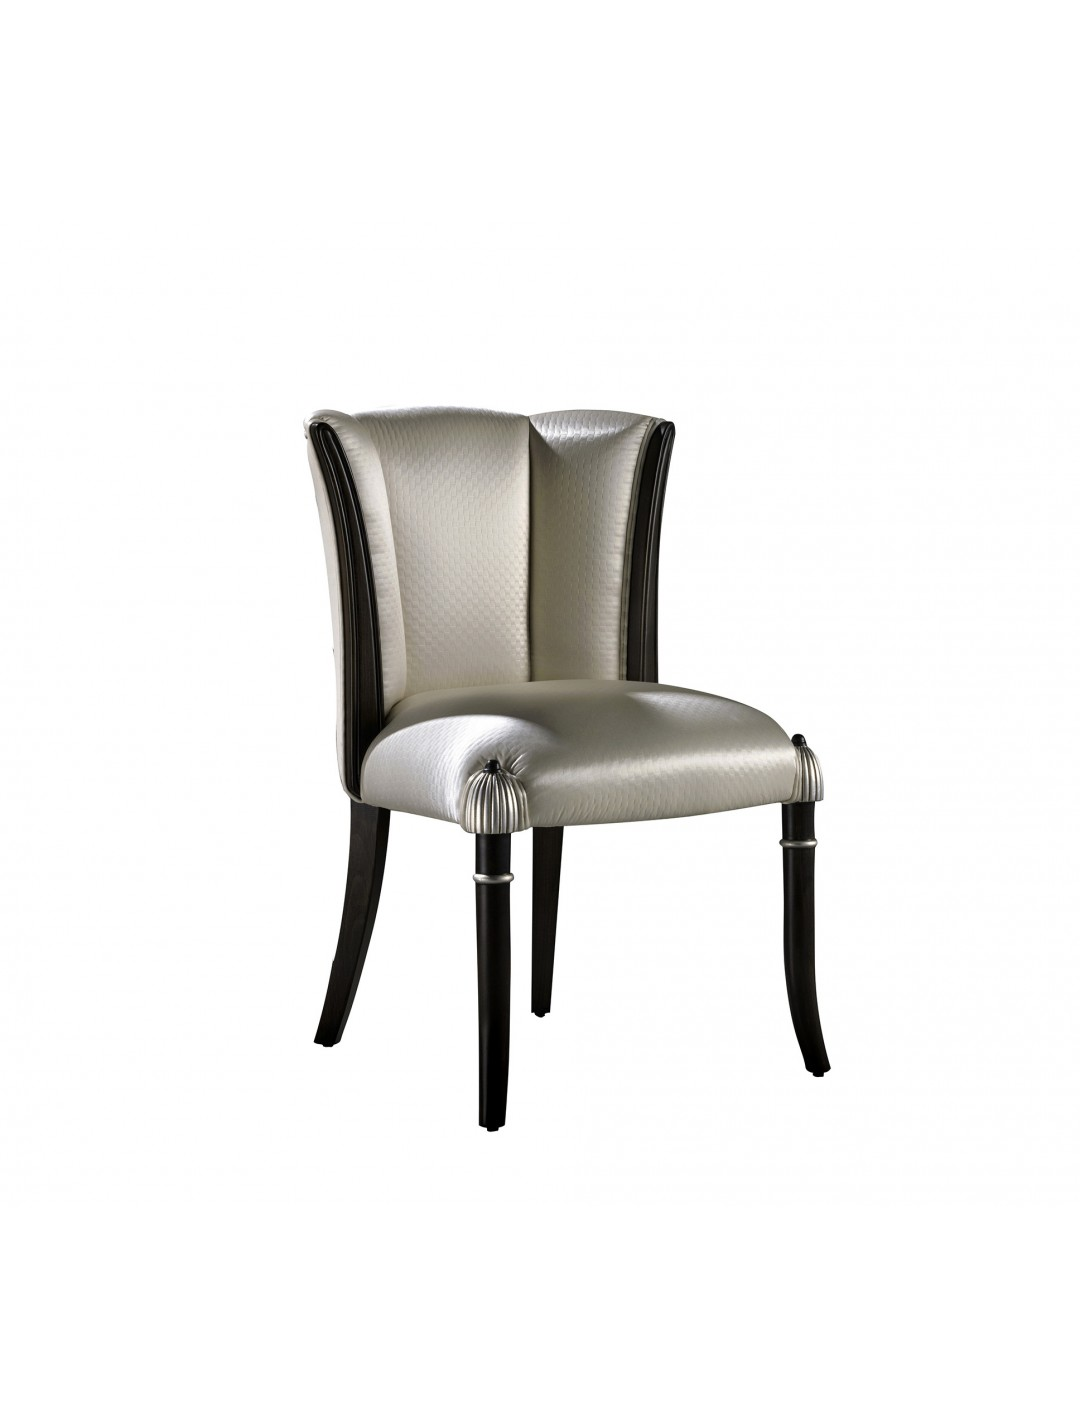 CASABLANCA DINING CHAIR, C.O.M.